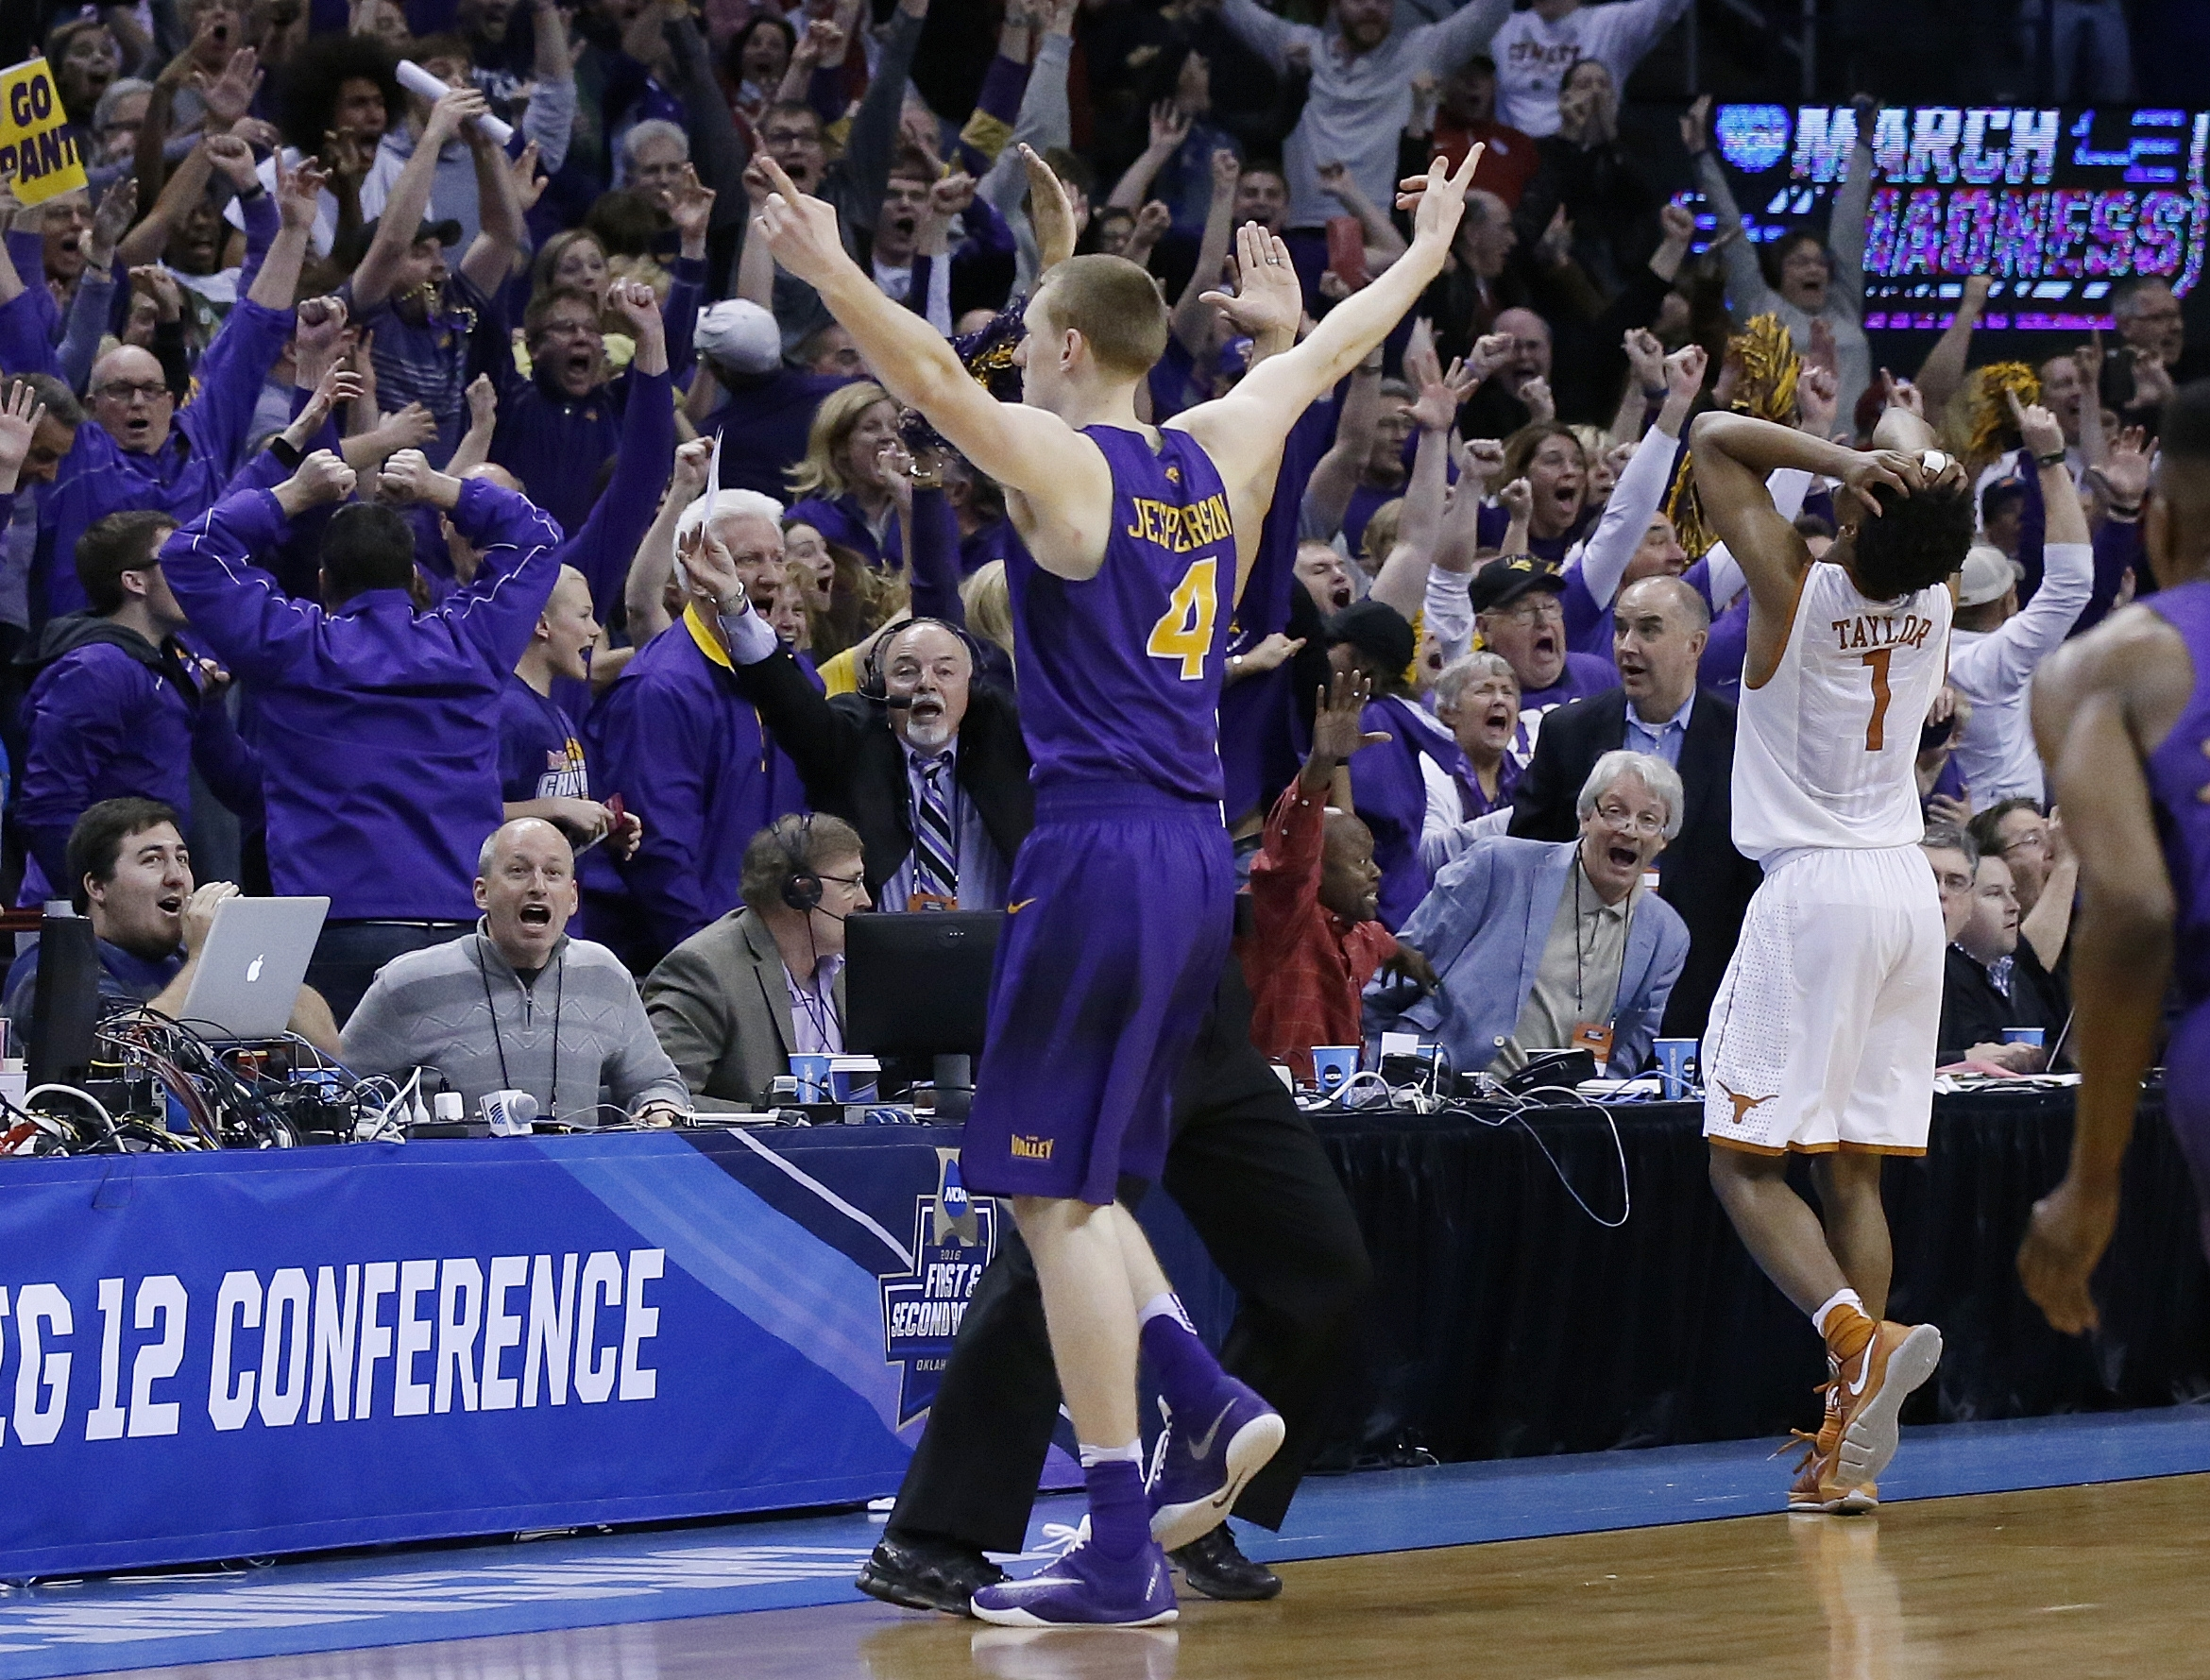 Northern Iowa guard Paul Jesperson gestures to fans after hitting the game-winning shot against Texas in a first-round men's college basketball game in the NCAA Tournament, Friday, March 18, 2016, in Oklahoma City. Texas guard Isaiah Taylor is at right. N